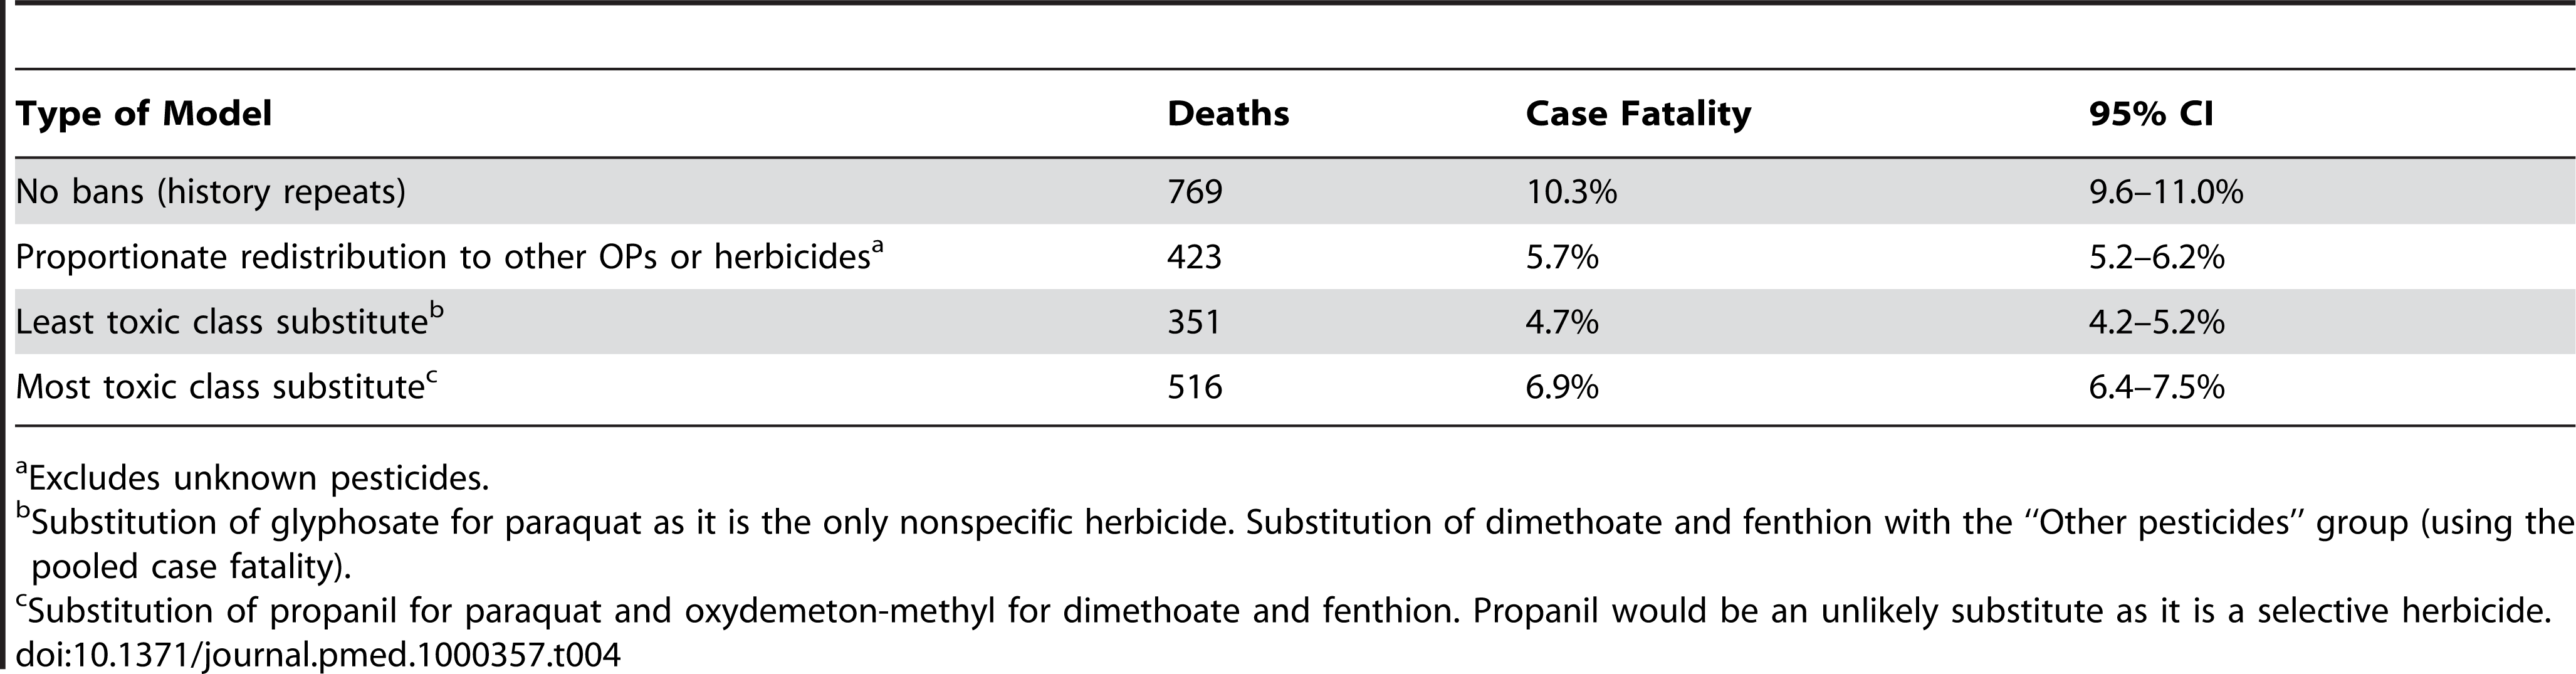 Modeling the potential effect of dimethoate, fenthion, and paraquat bans in an equal size cohort (7,461 patients with known pesticide<em class=&quot;ref&quot;>a</em> ingestion).